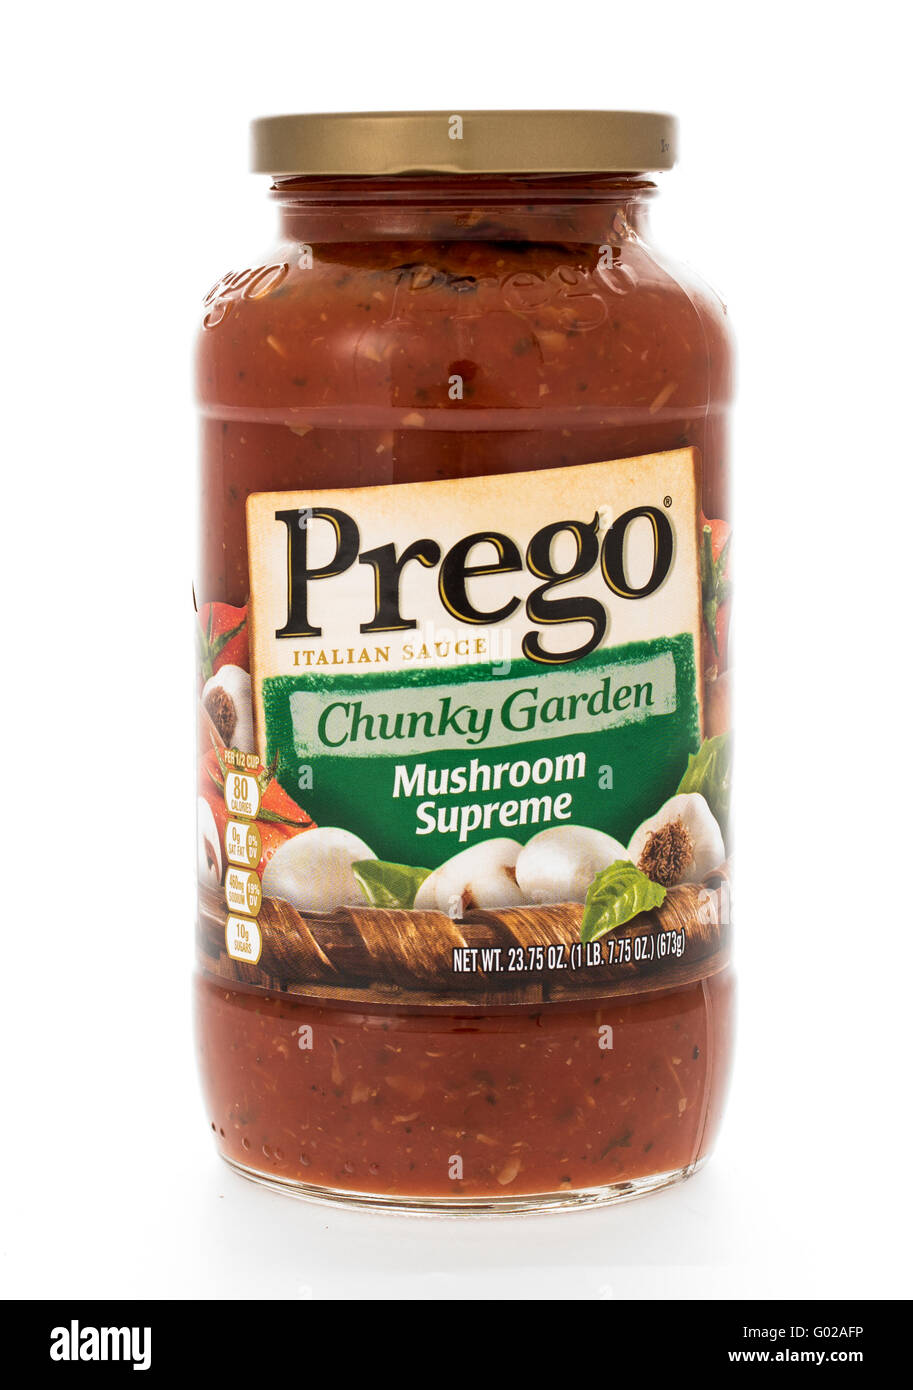 Winneconne, WI - 7 February 2015:  Jar of Prego  Chunky Garden Mushroon Supreme flavored pasta sauce. - Stock Image